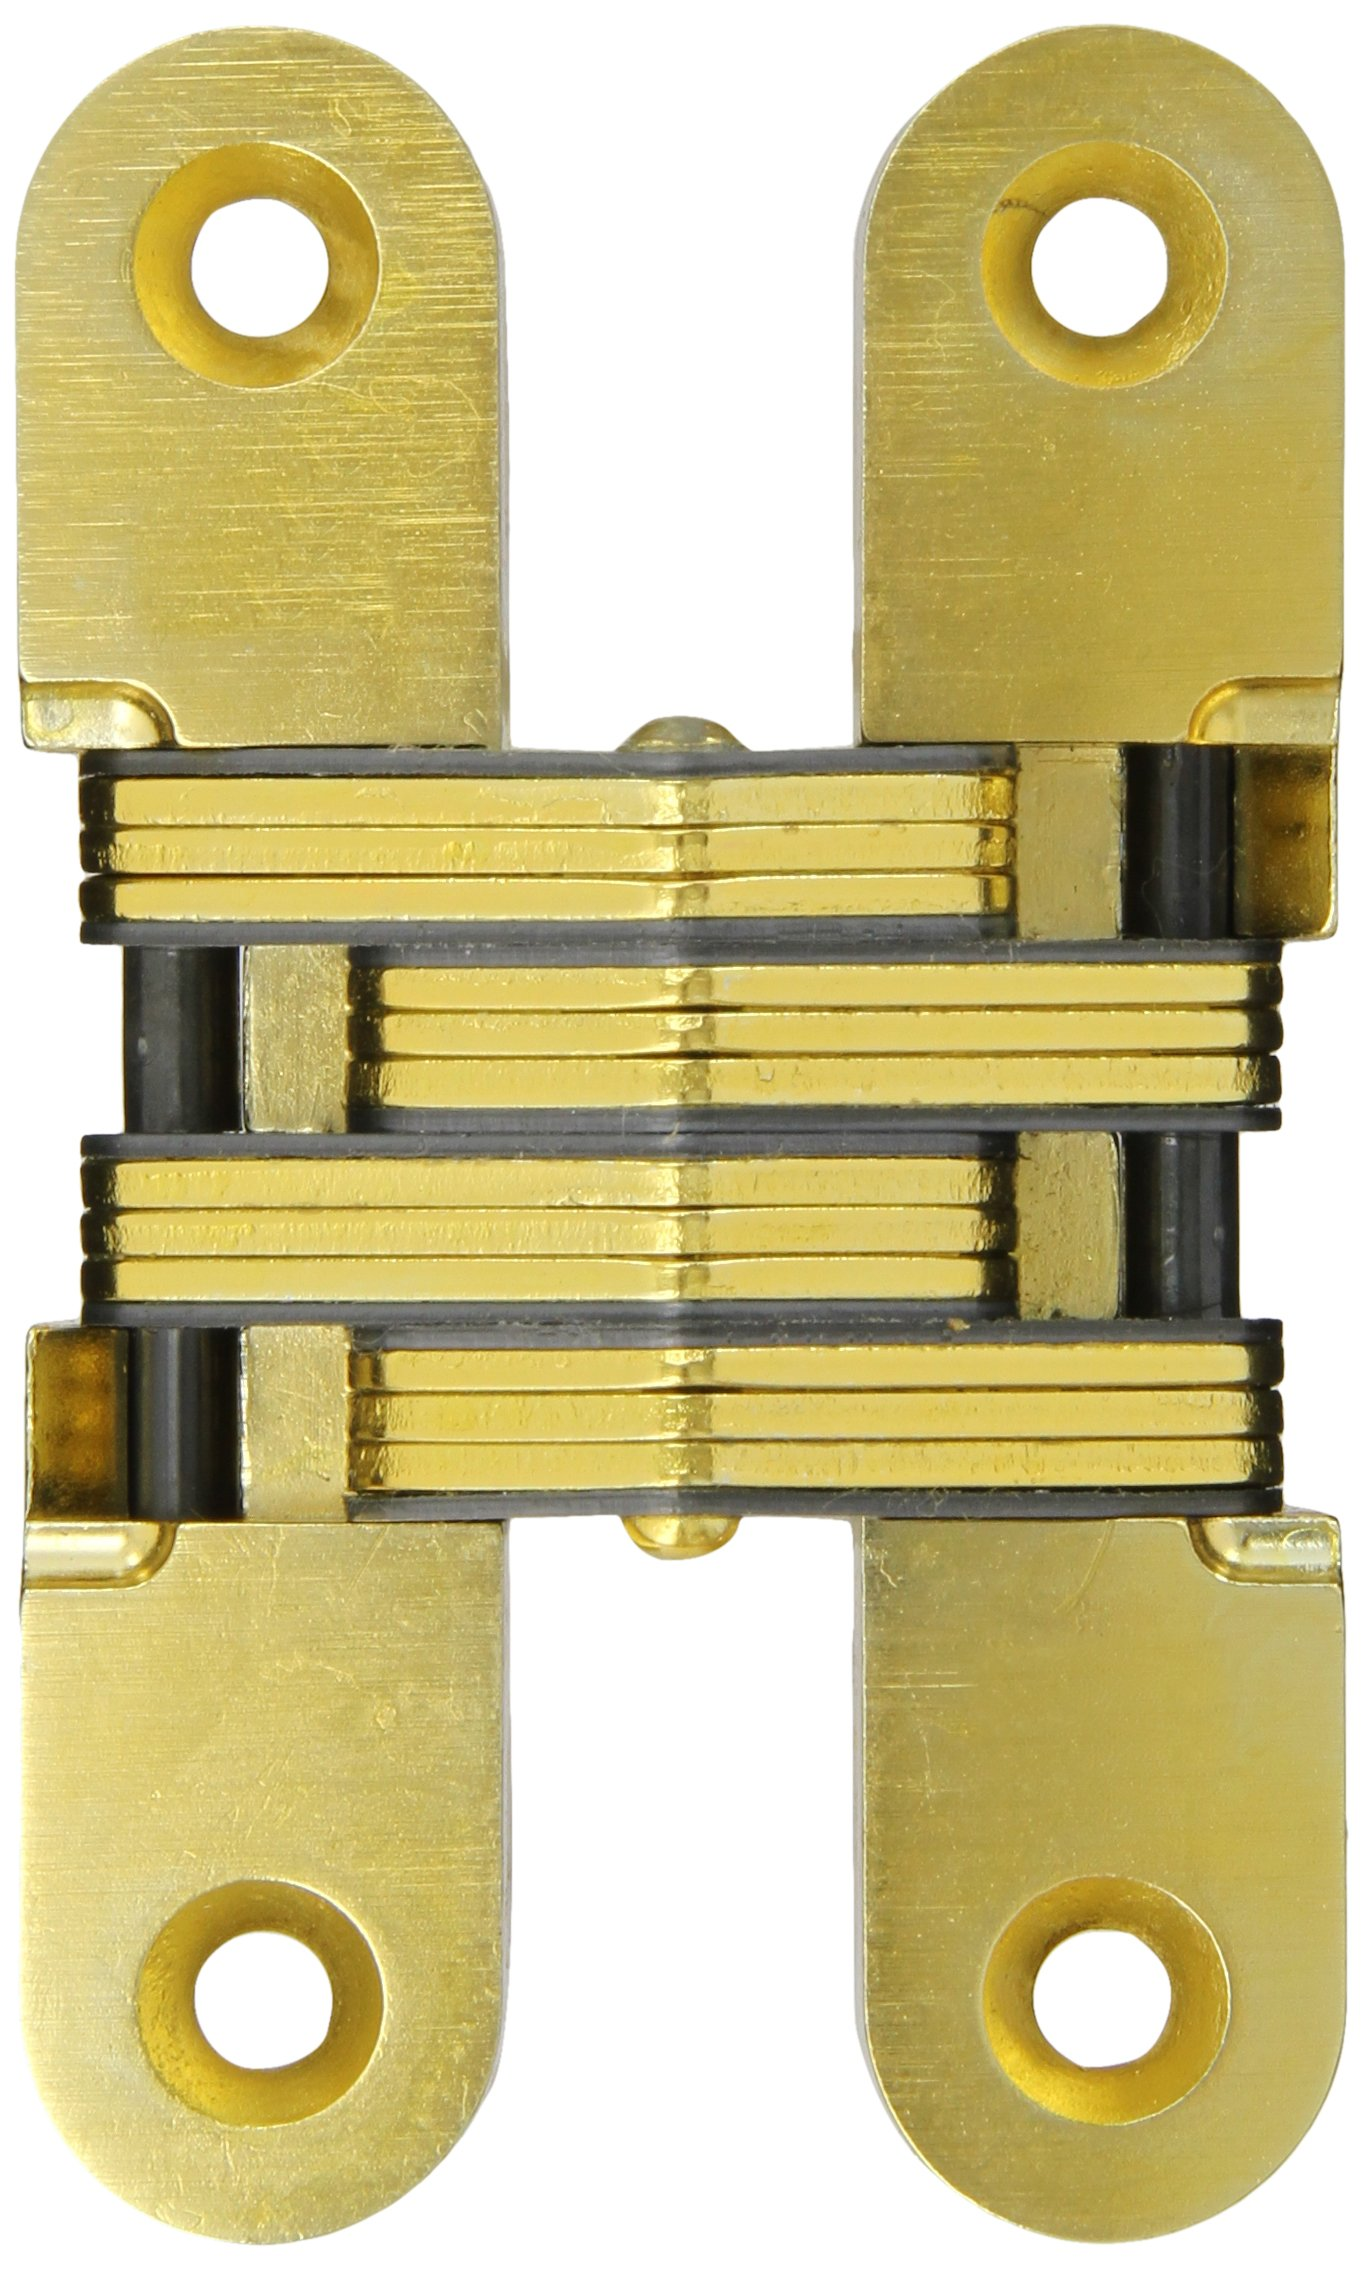 SOSS Mortise Mount Invisible Hinge with 4 Holes, Zinc, Satin Brass Finish, 4-5/8'' Leaf Height, 1'' Leaf Width, 1-7/16'' Leaf Thickness, 14 x 1-1/2'' Screw Size